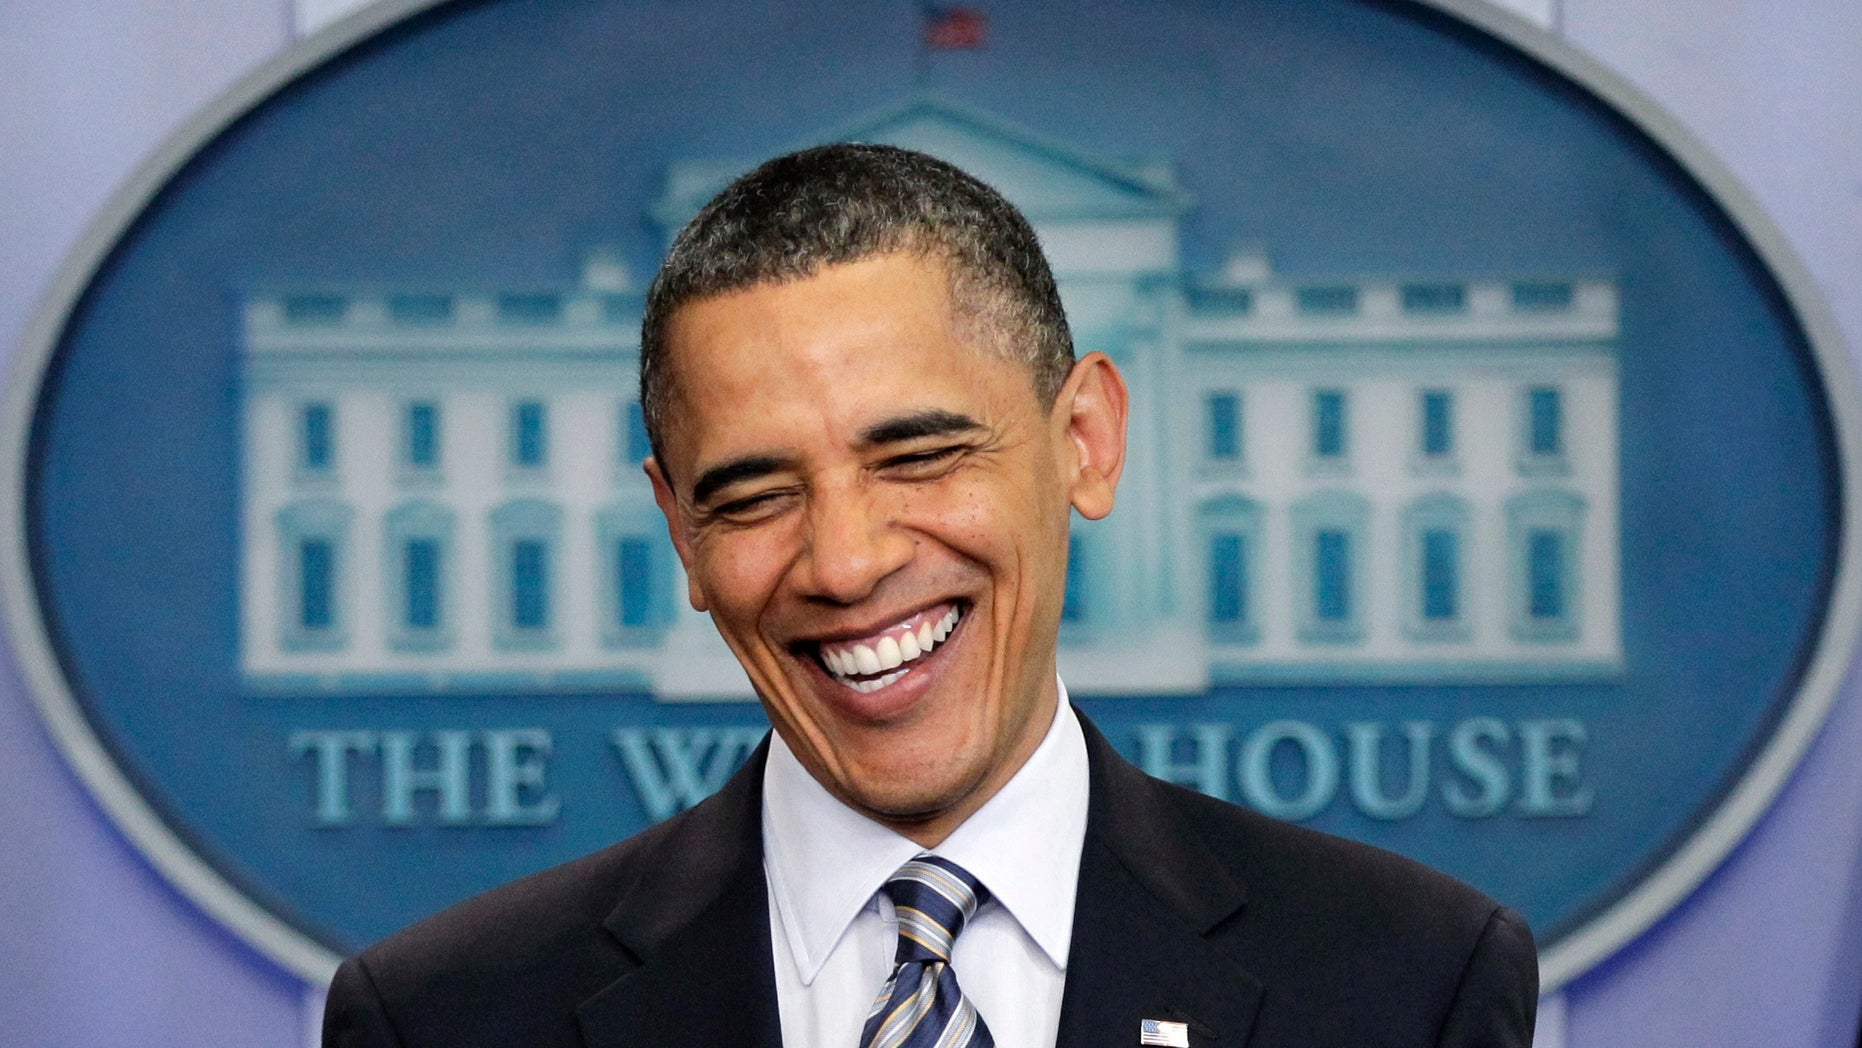 In this April 27, 2011, file photo President Obama laughs as comments to reporters on the controversy over his birth certificate and true nationality in the White House briefing room in Washington. (AP)